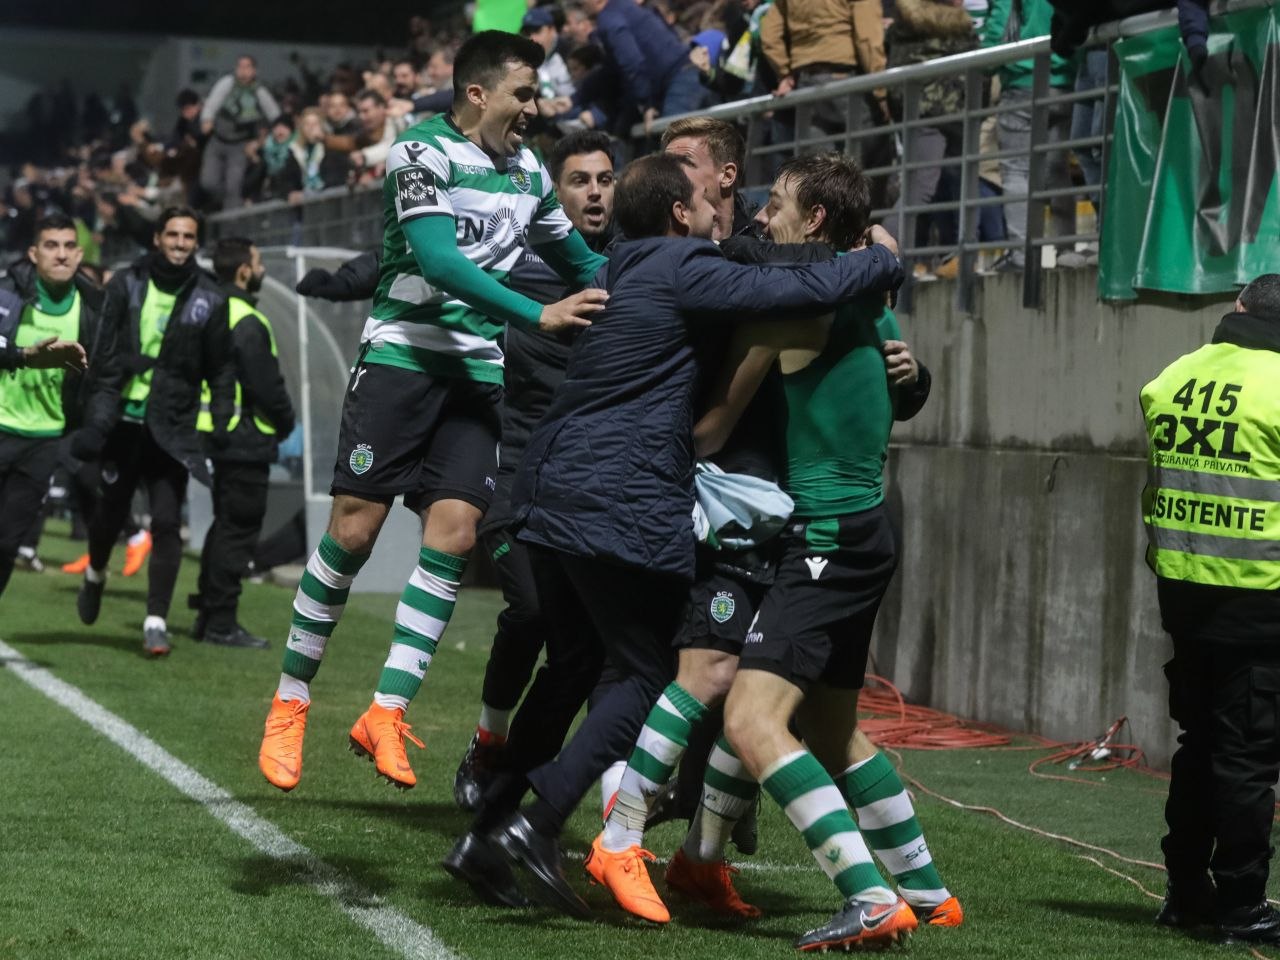 Sporting controversy after stoppage time winner